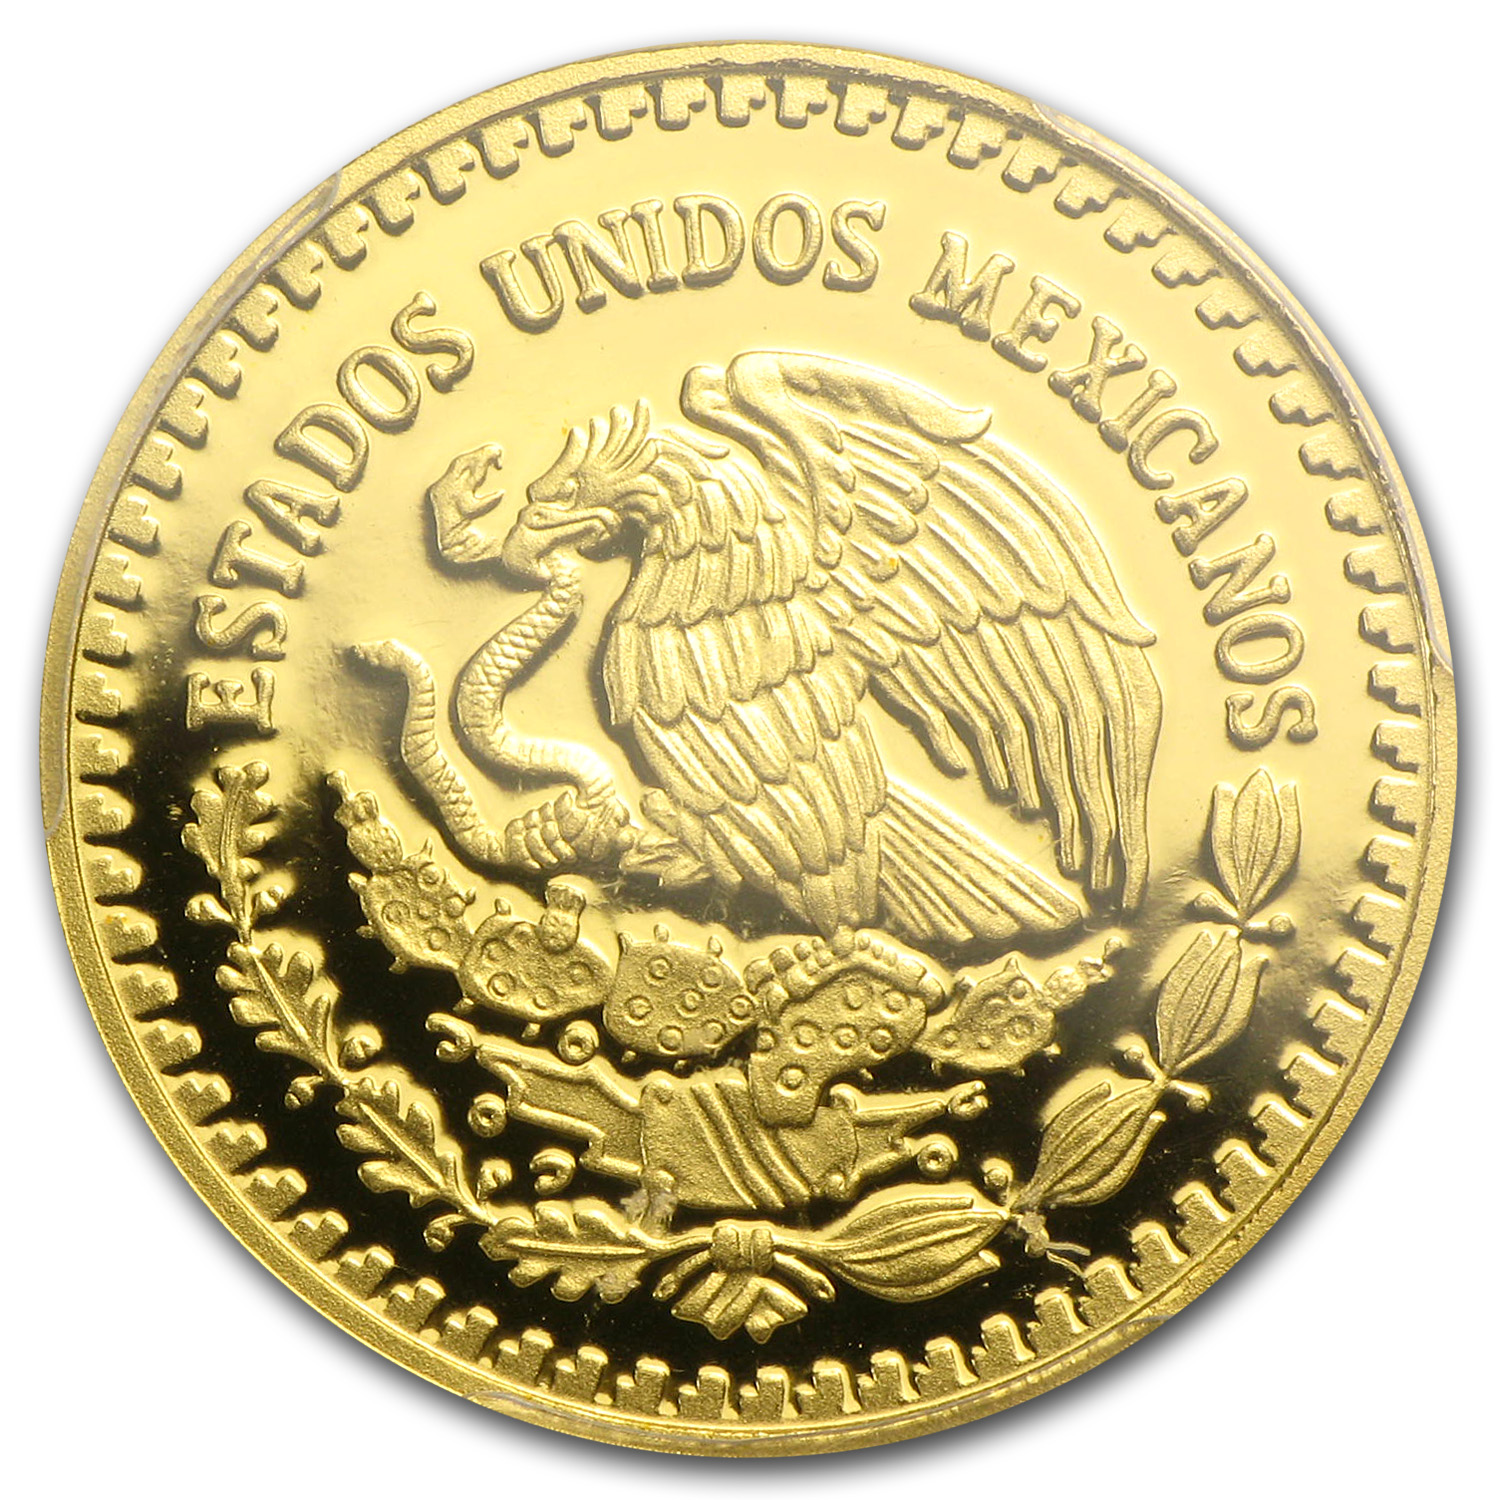 2014 Mexico 1/4 oz Gold Libertad PR-70 PCGS (Registry Coin)